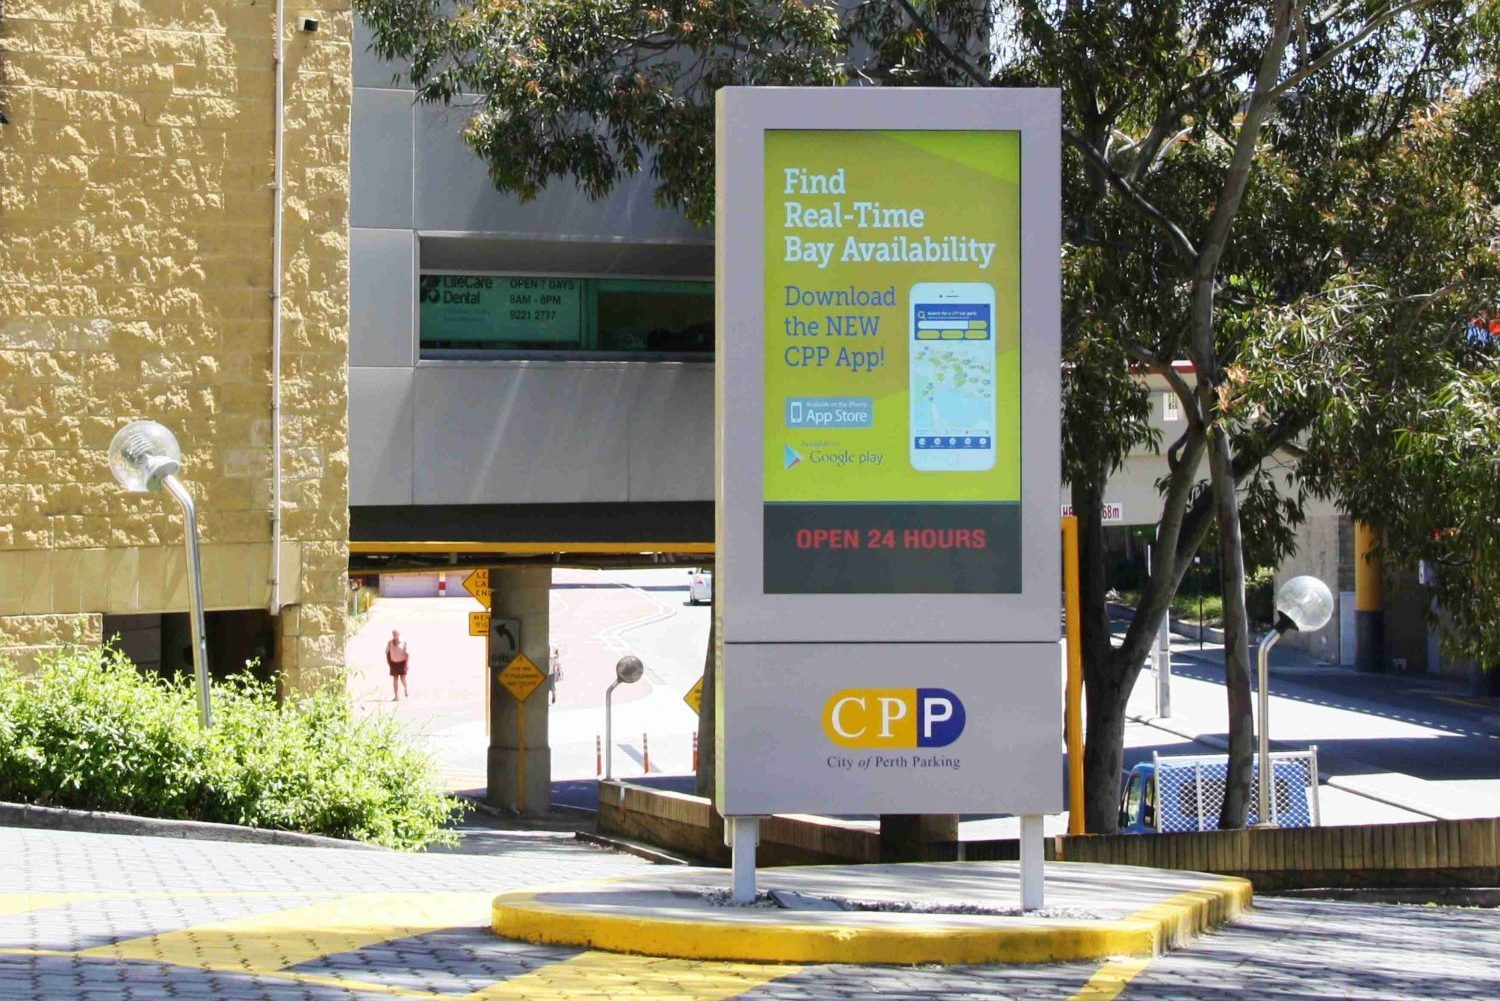 CPP City of Perth Parking Digital Info Signs 1